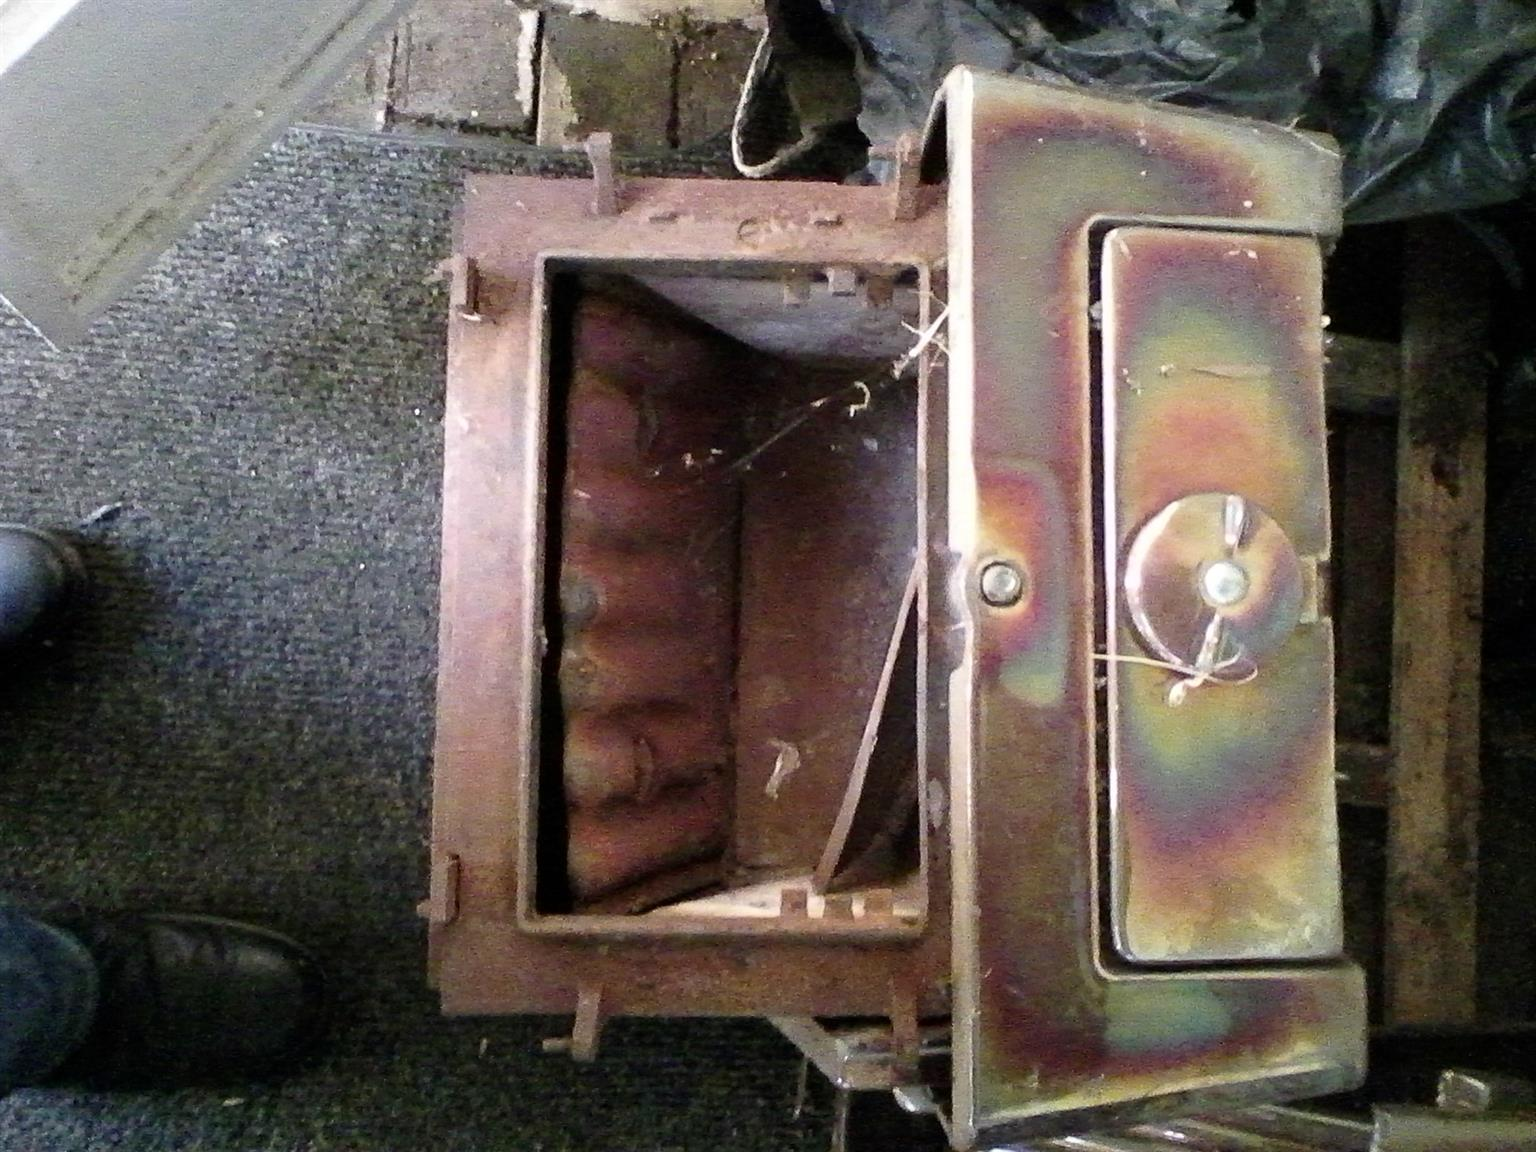 An old Anthracite heater. Essies. Good condition. PRICE: R2500 CASH CONTACT: James 084-734-7090